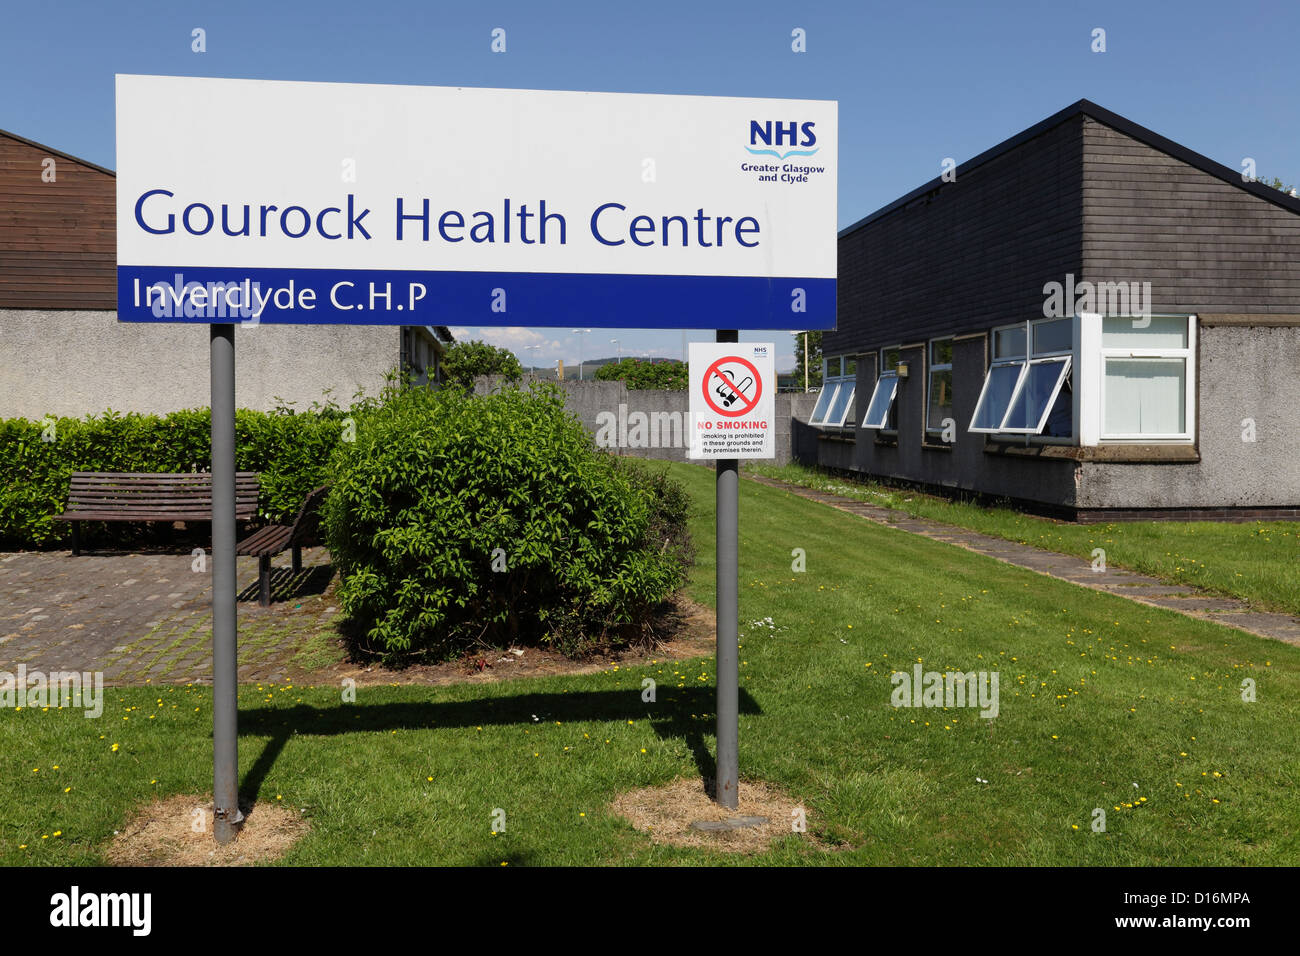 Gourock Health Centre sign, Inverclyde, Scotland, UK - Stock Image